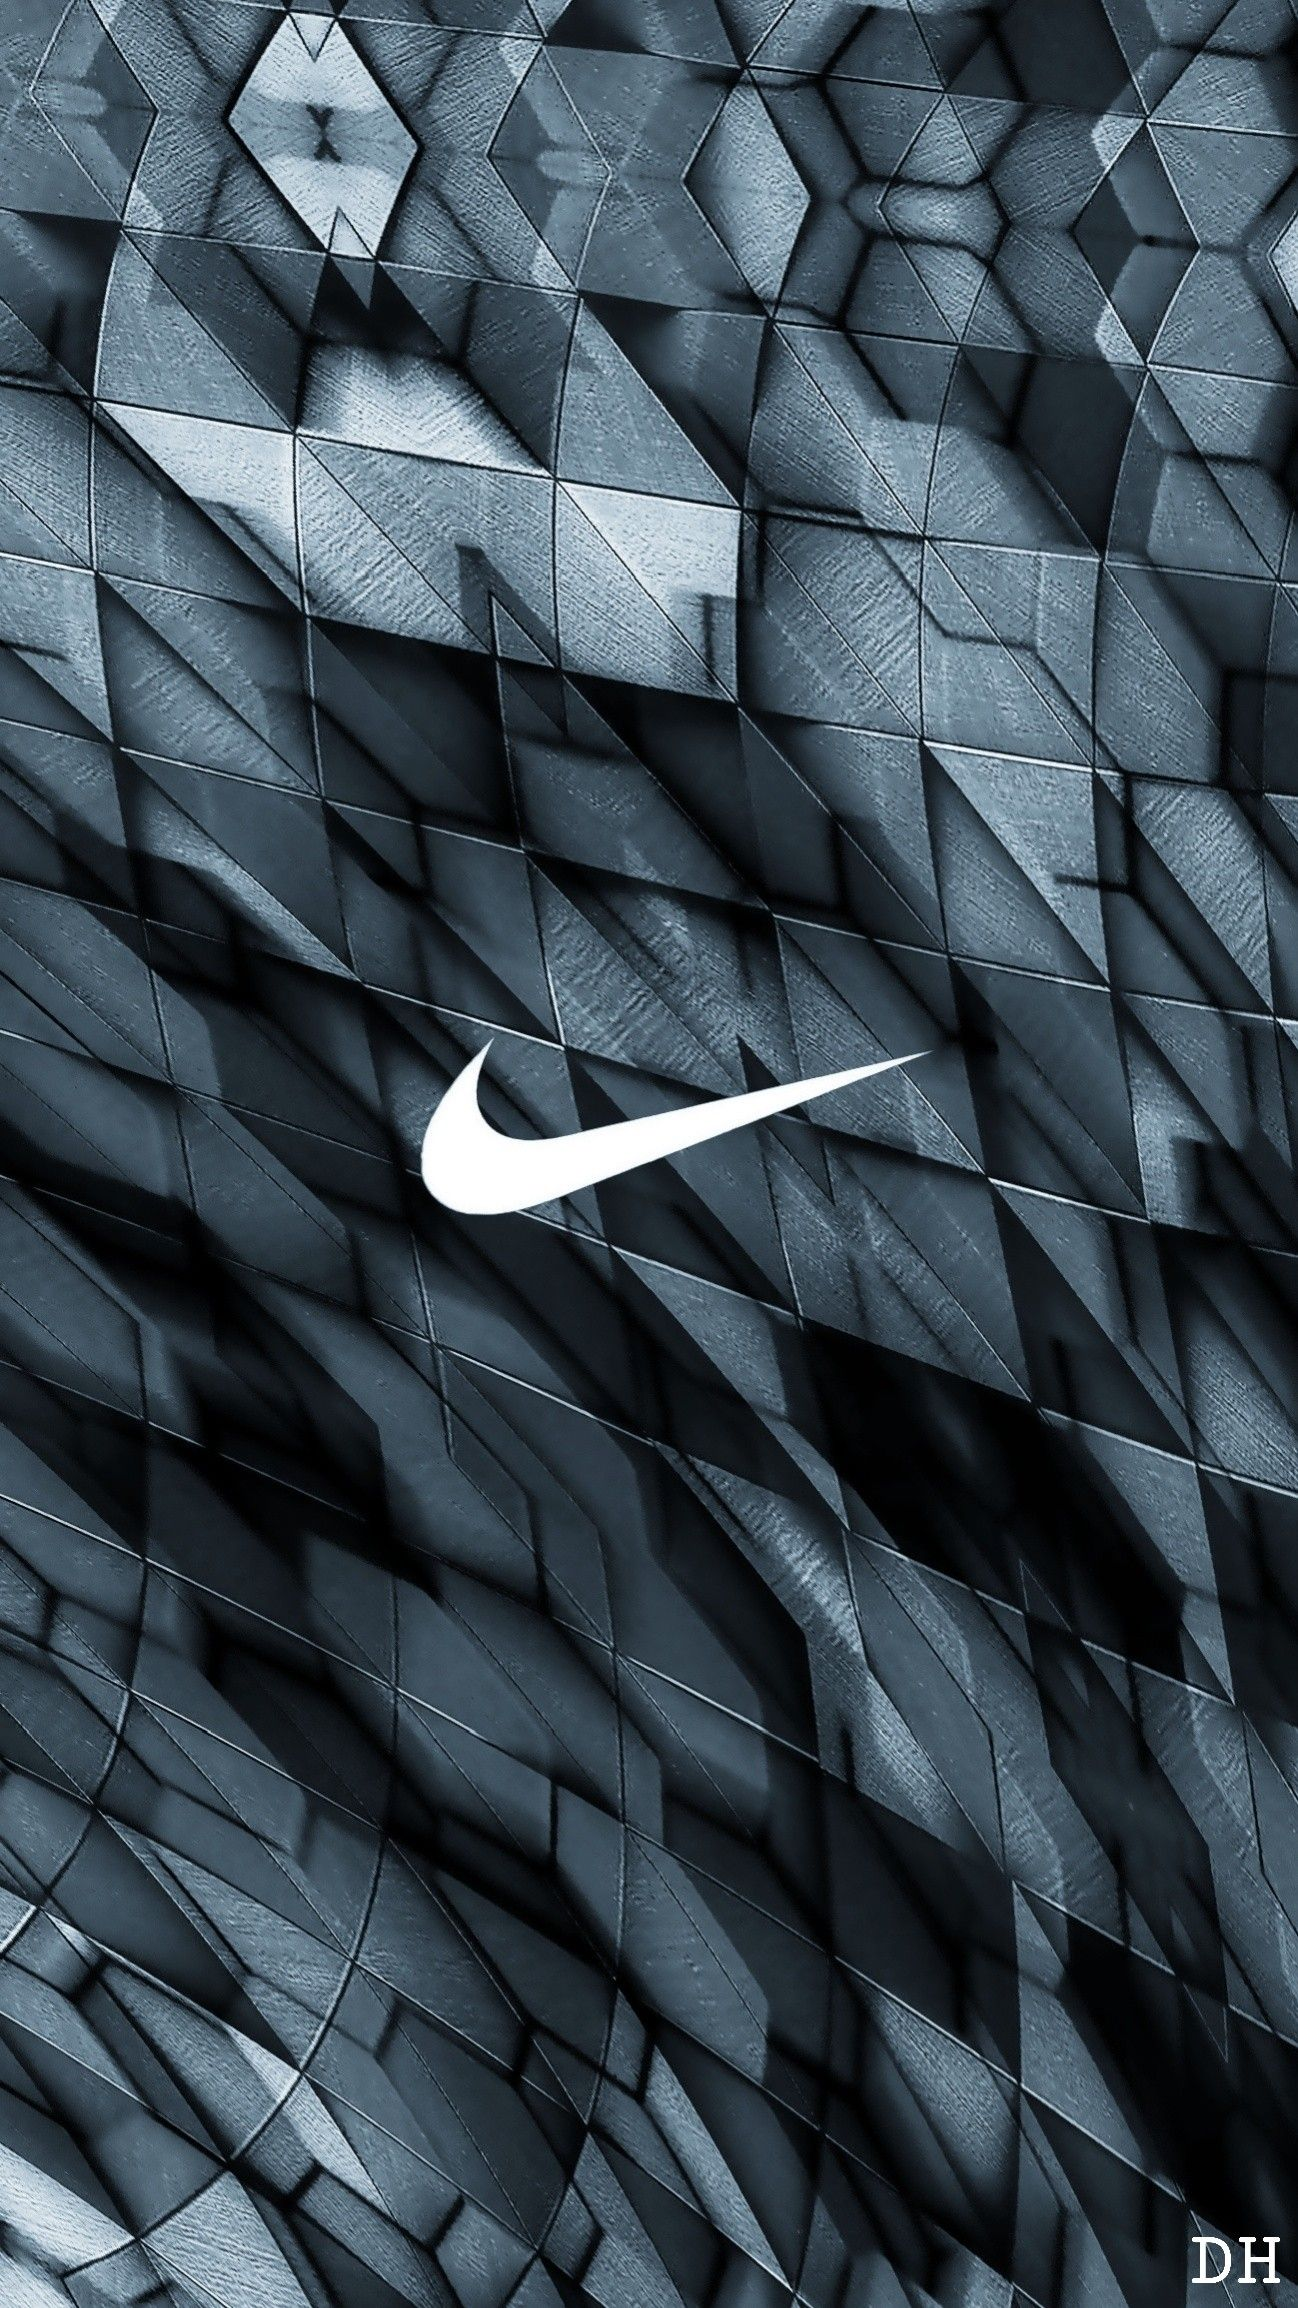 Pin By Hooter S Konceptz On Nike Wallpaper Nike Wallpaper Nike Wallpaper Iphone Cool Nike Wallpapers